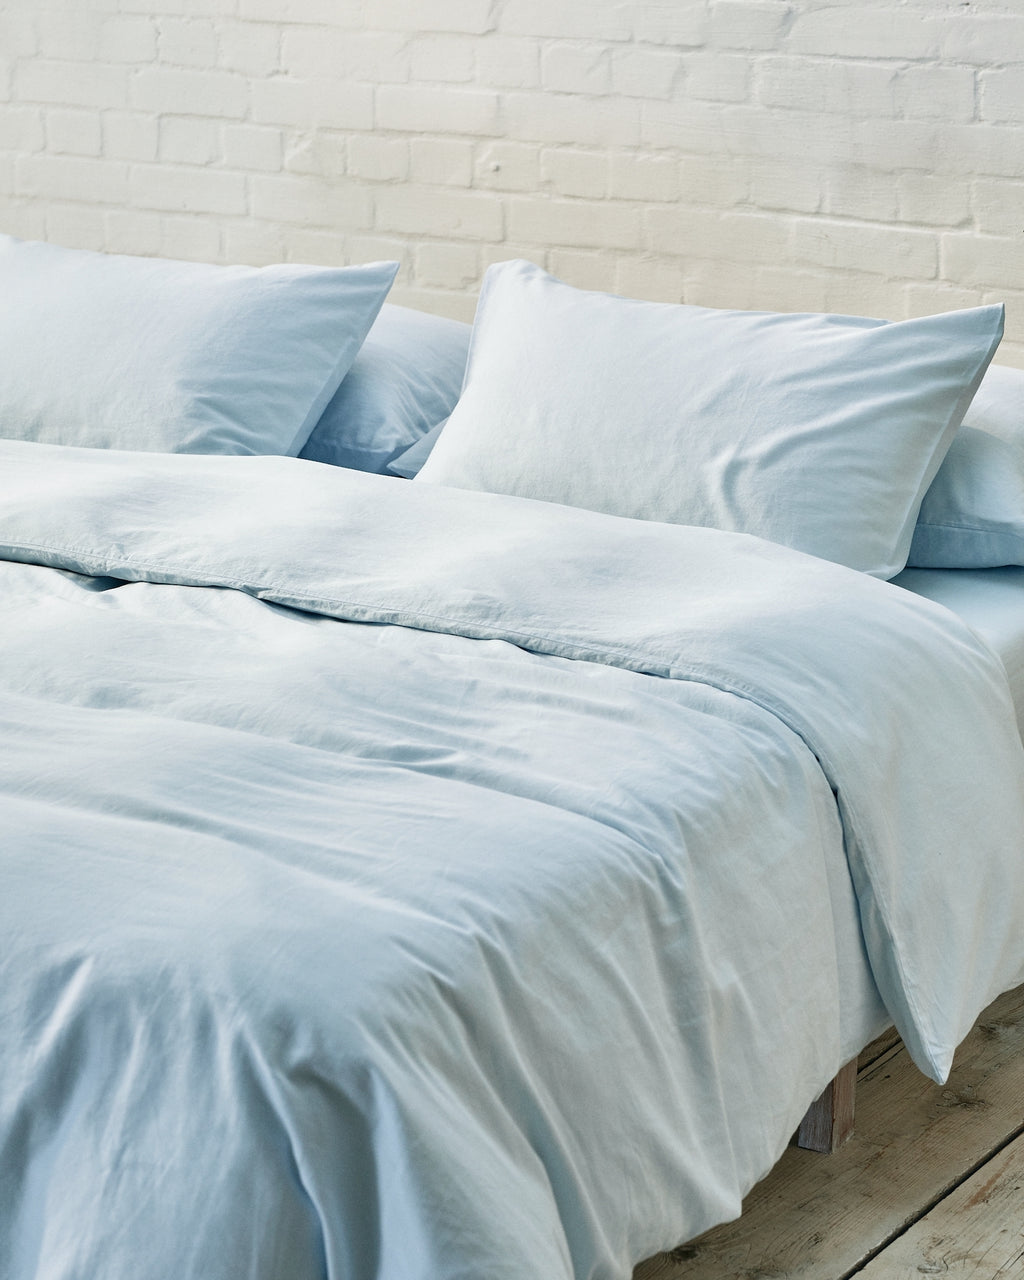 light blue bedding set in an industrial bedroom